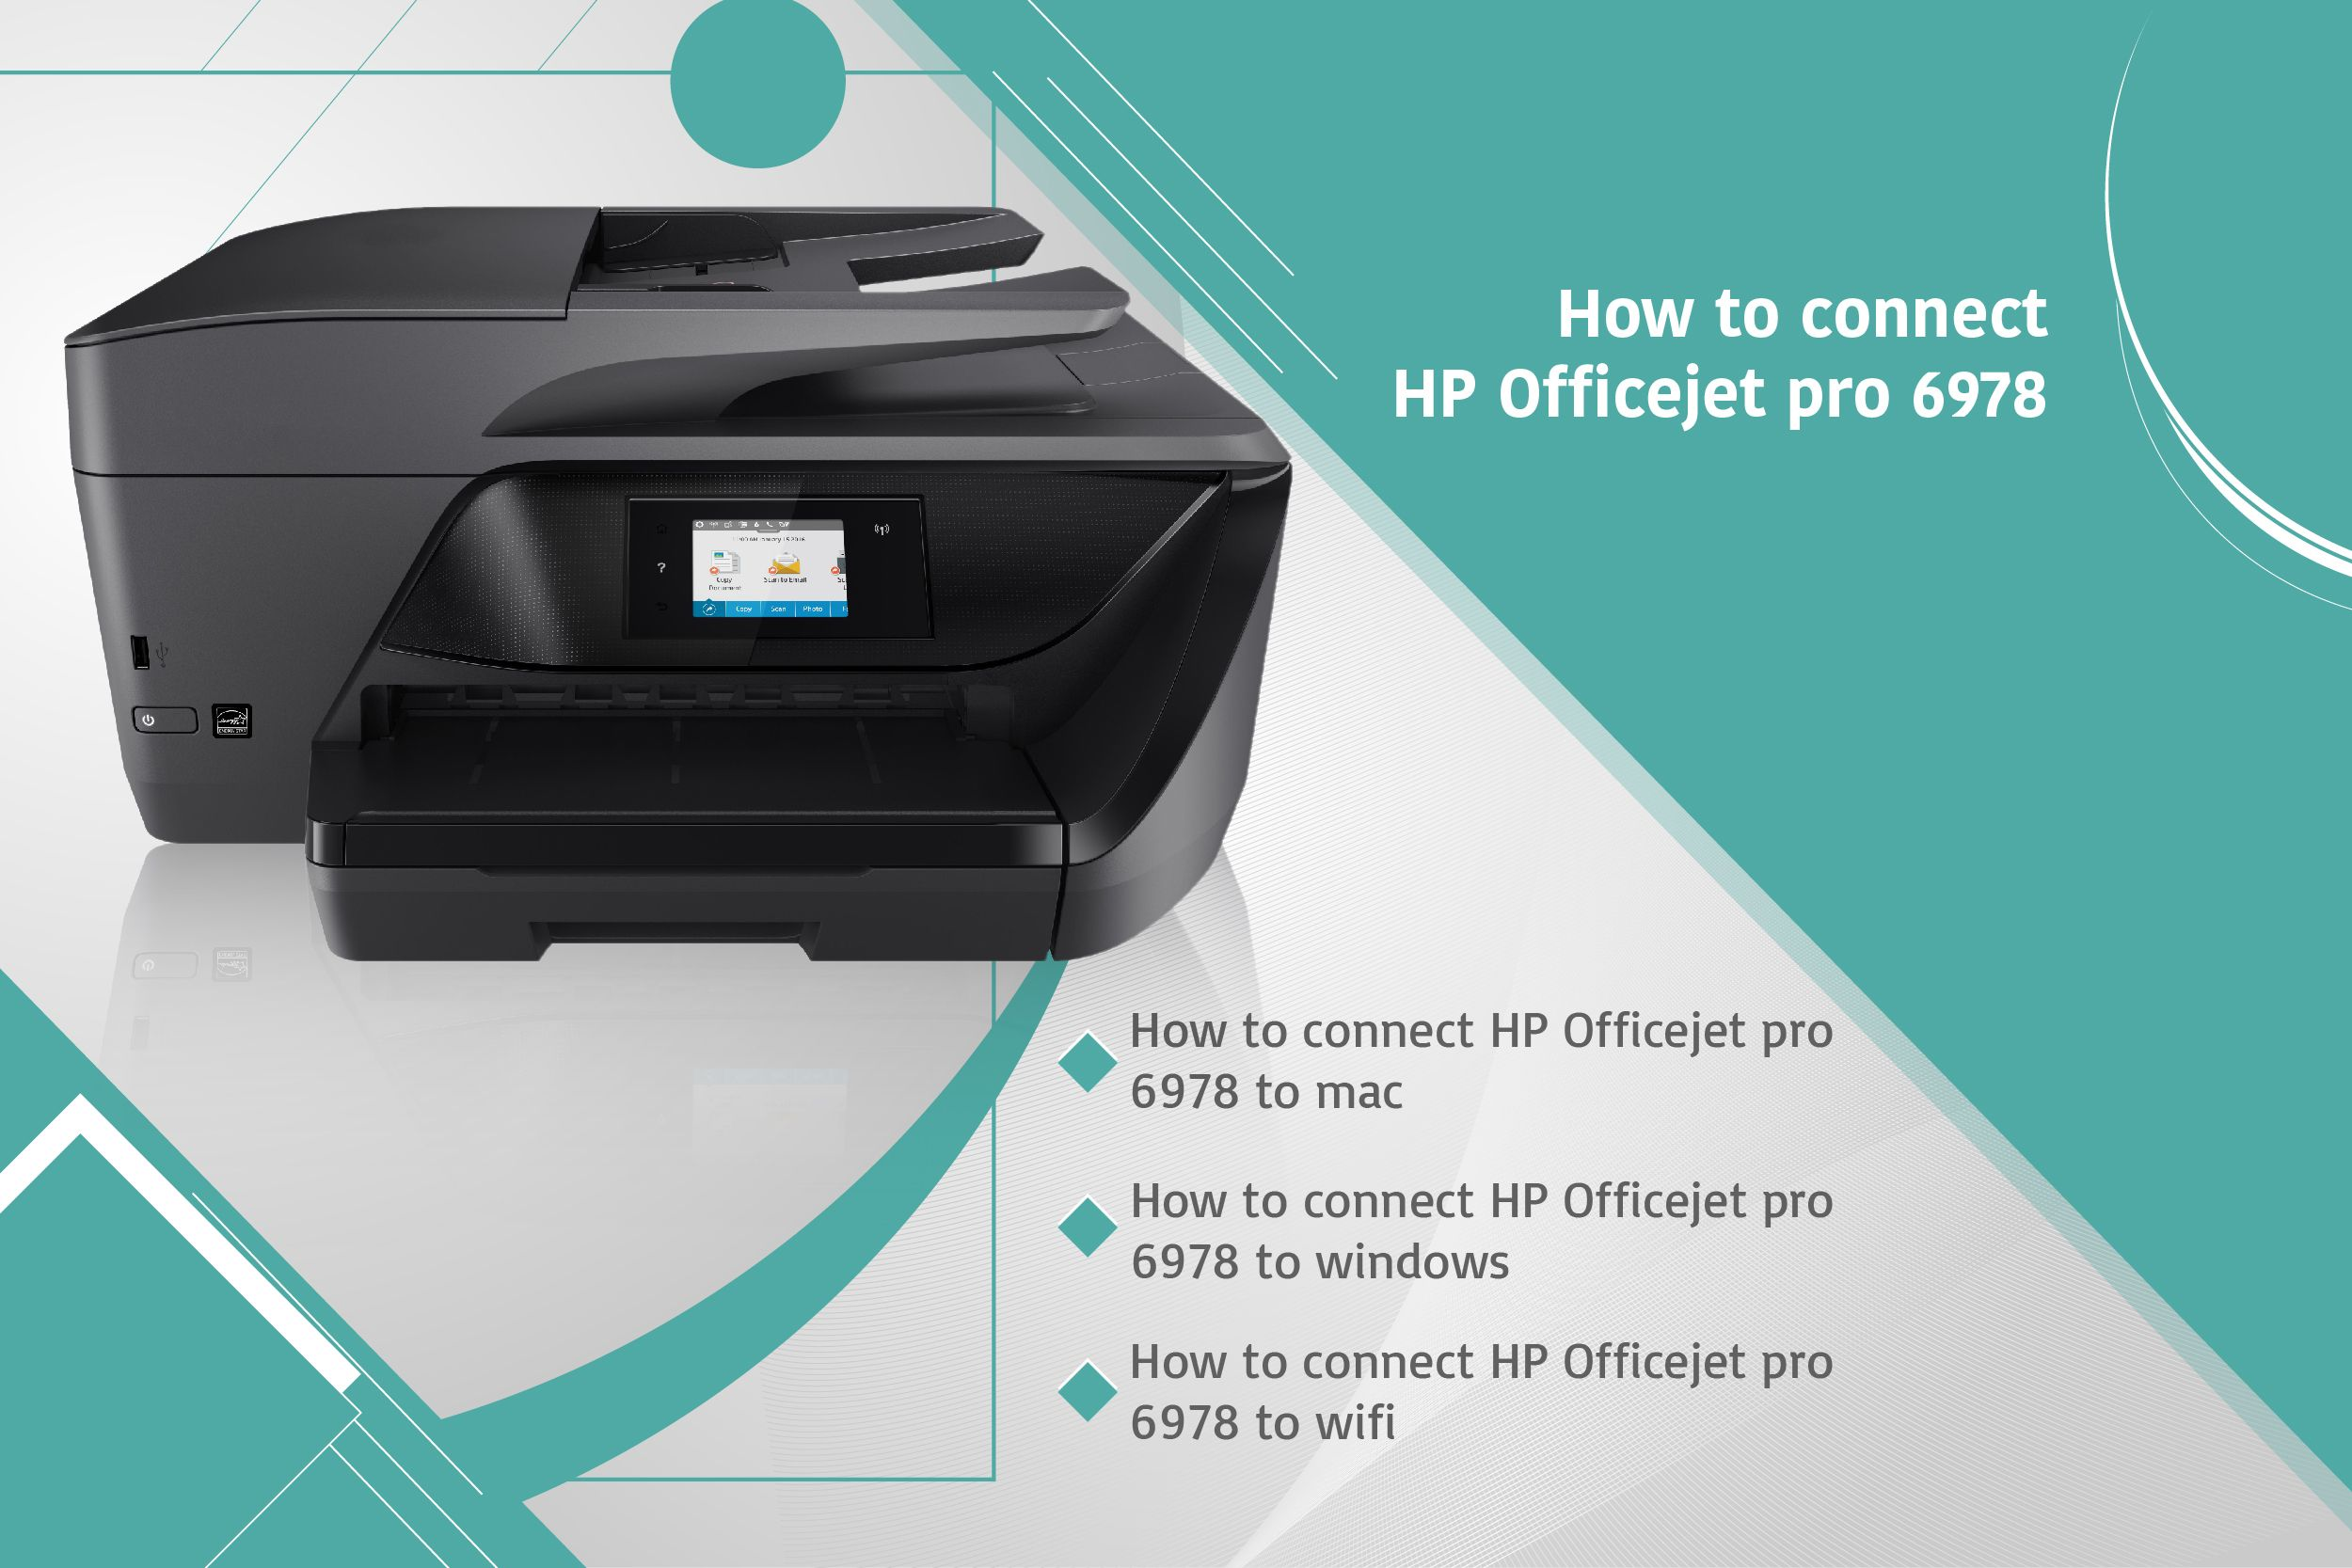 Steps to connect HP Officejet pro 6978 printer to mac